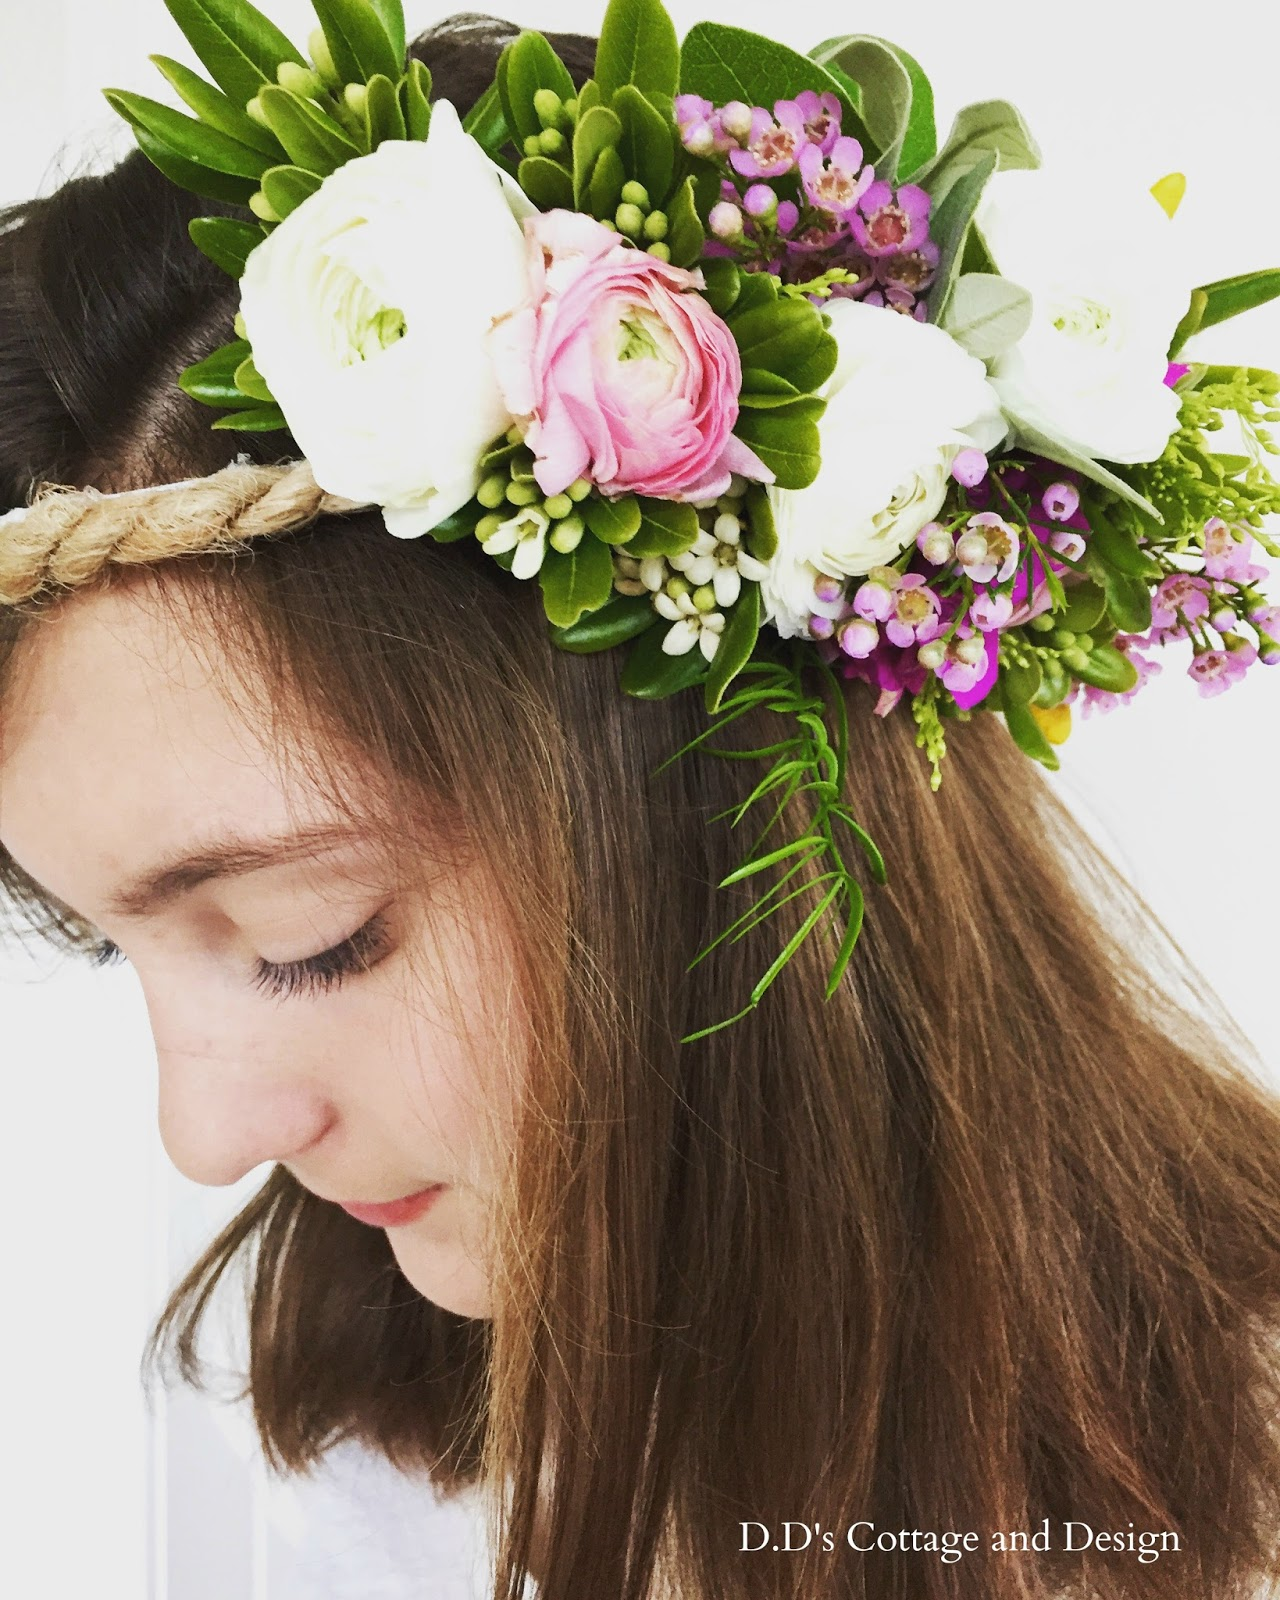 Dds cottage and design fresh flower crowns my gorgeous daughter izmirmasajfo